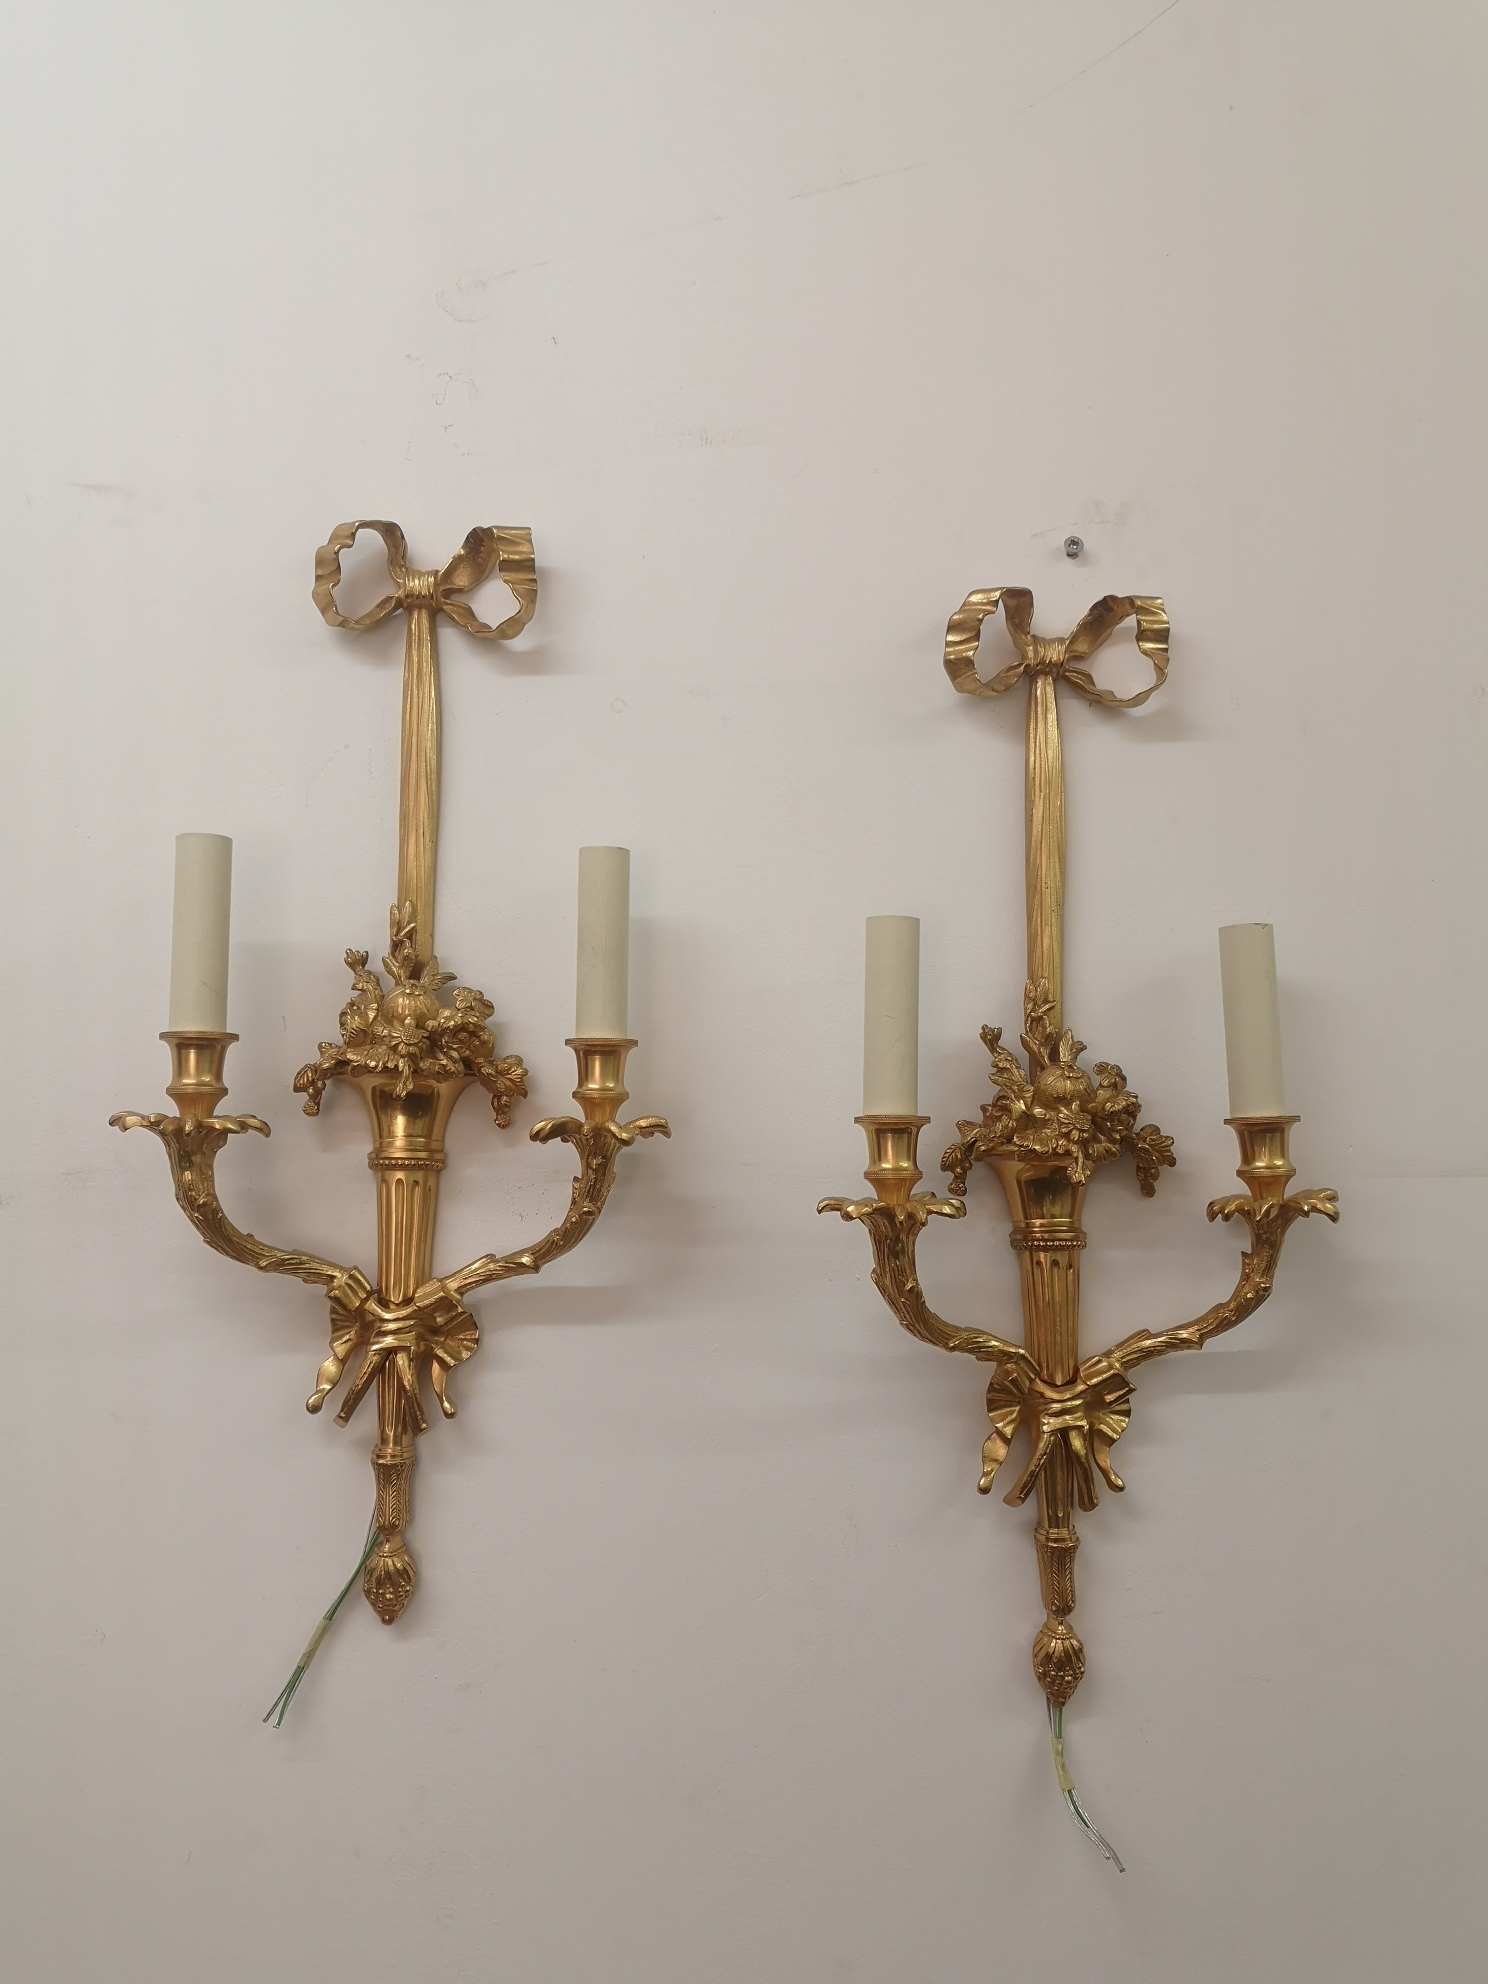 Pair Of 19th Century French Gilt Bronze Wall Lights